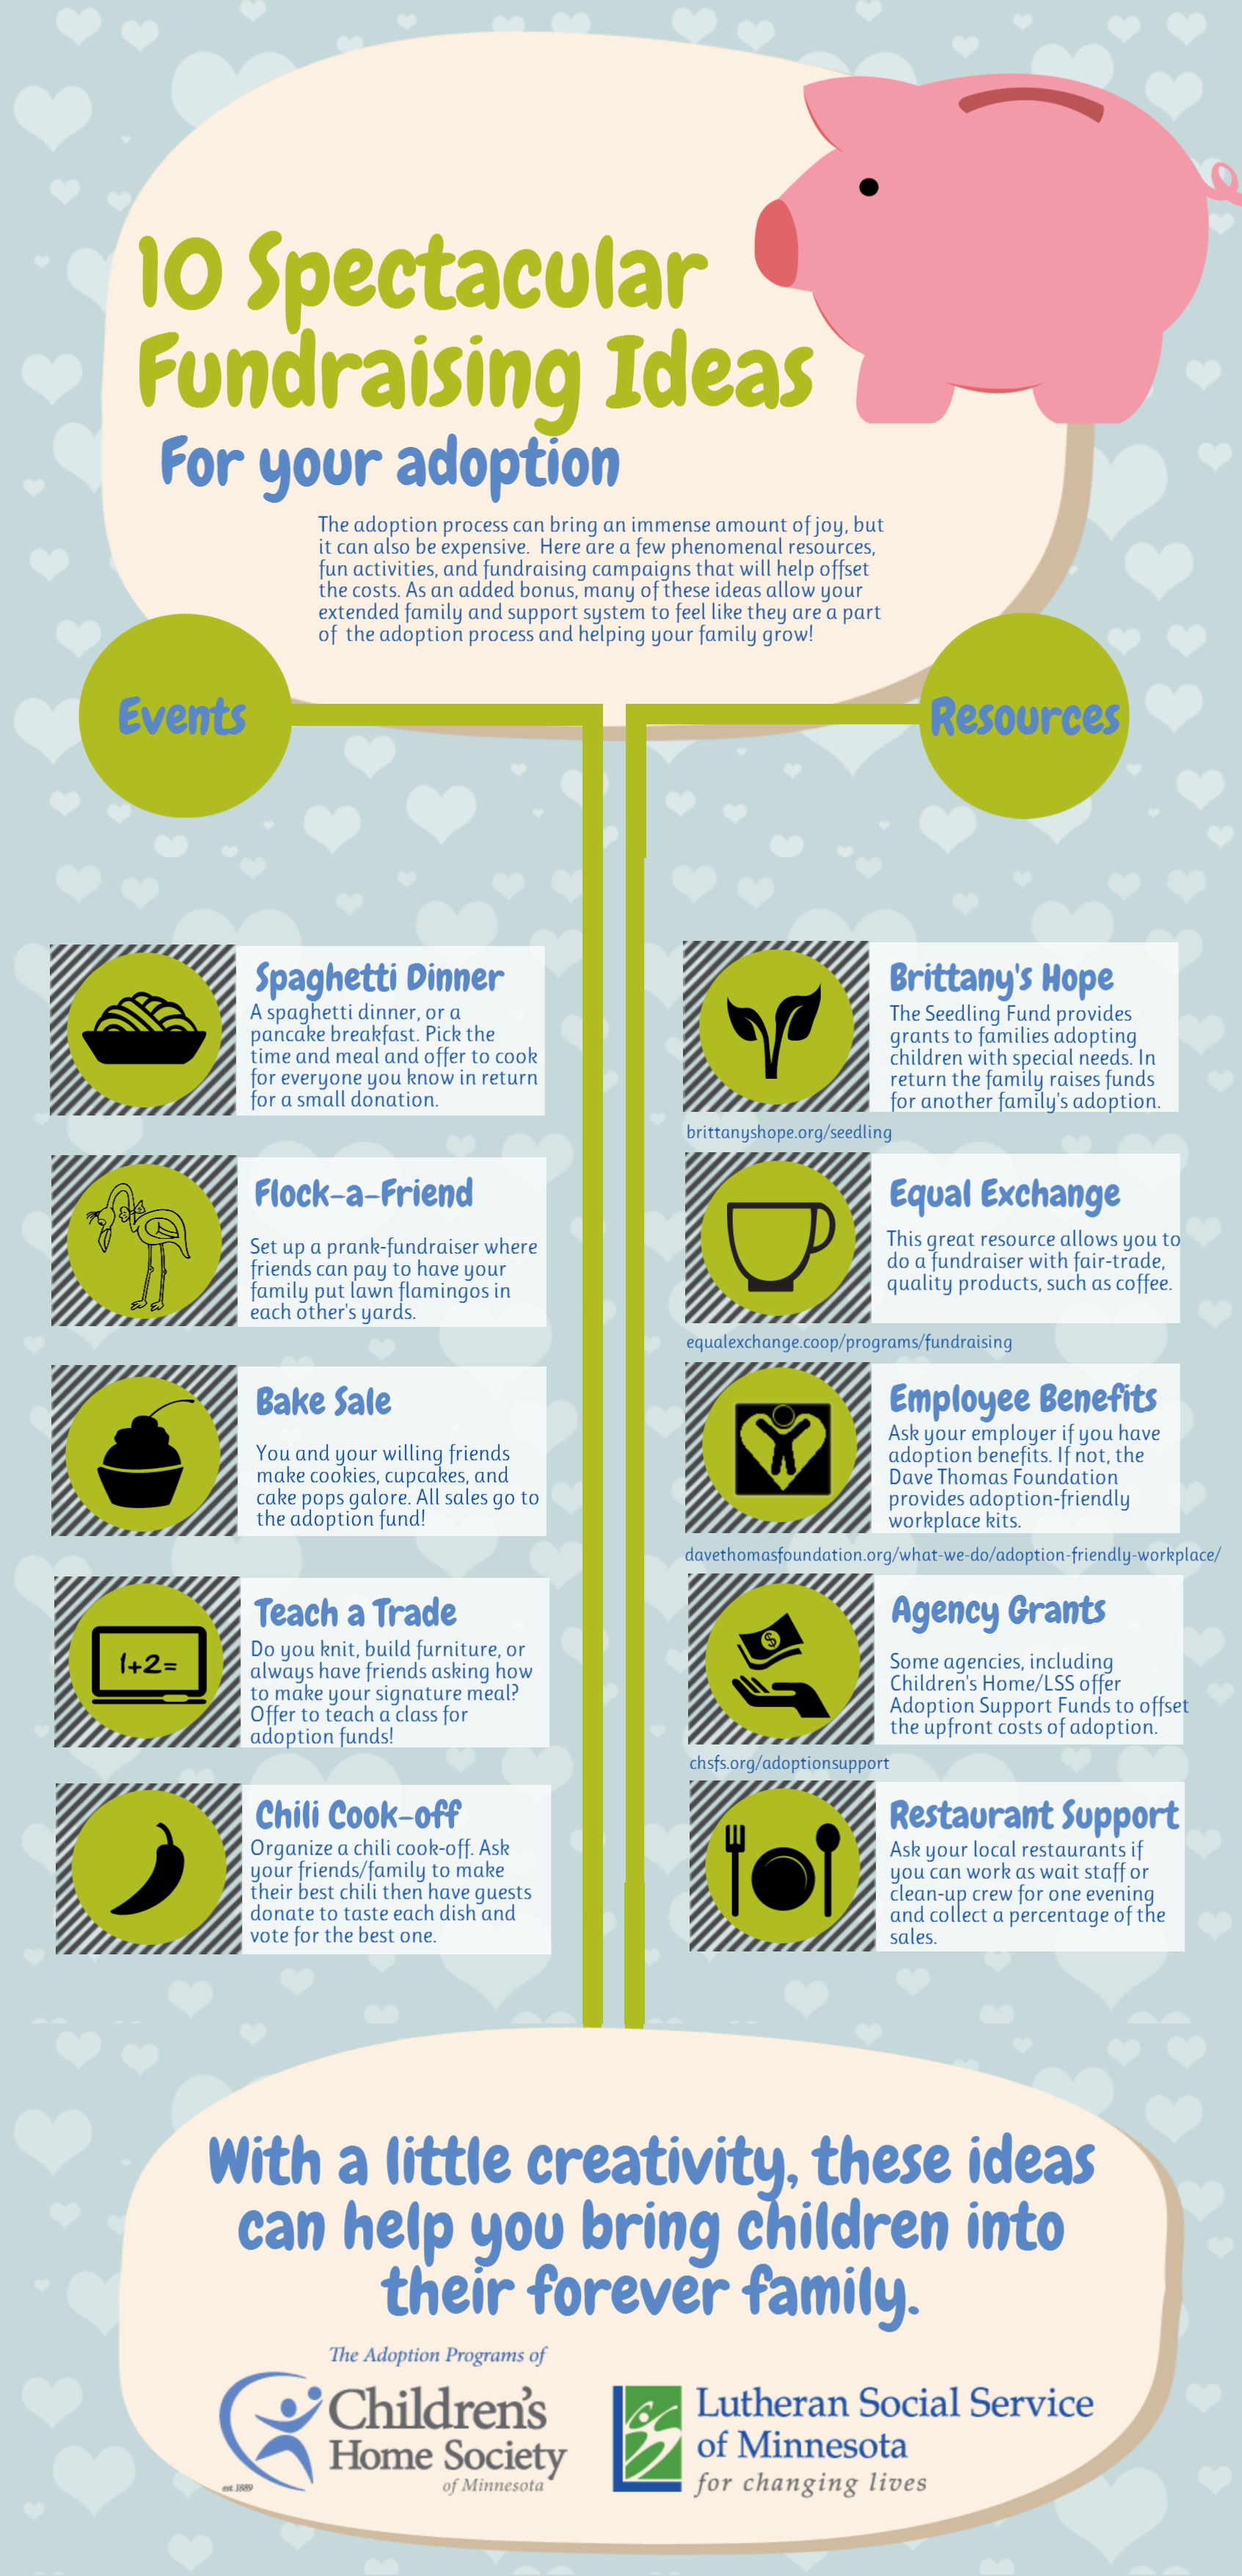 10 spectacular #adoption fundraising ideas! #infographic | frg